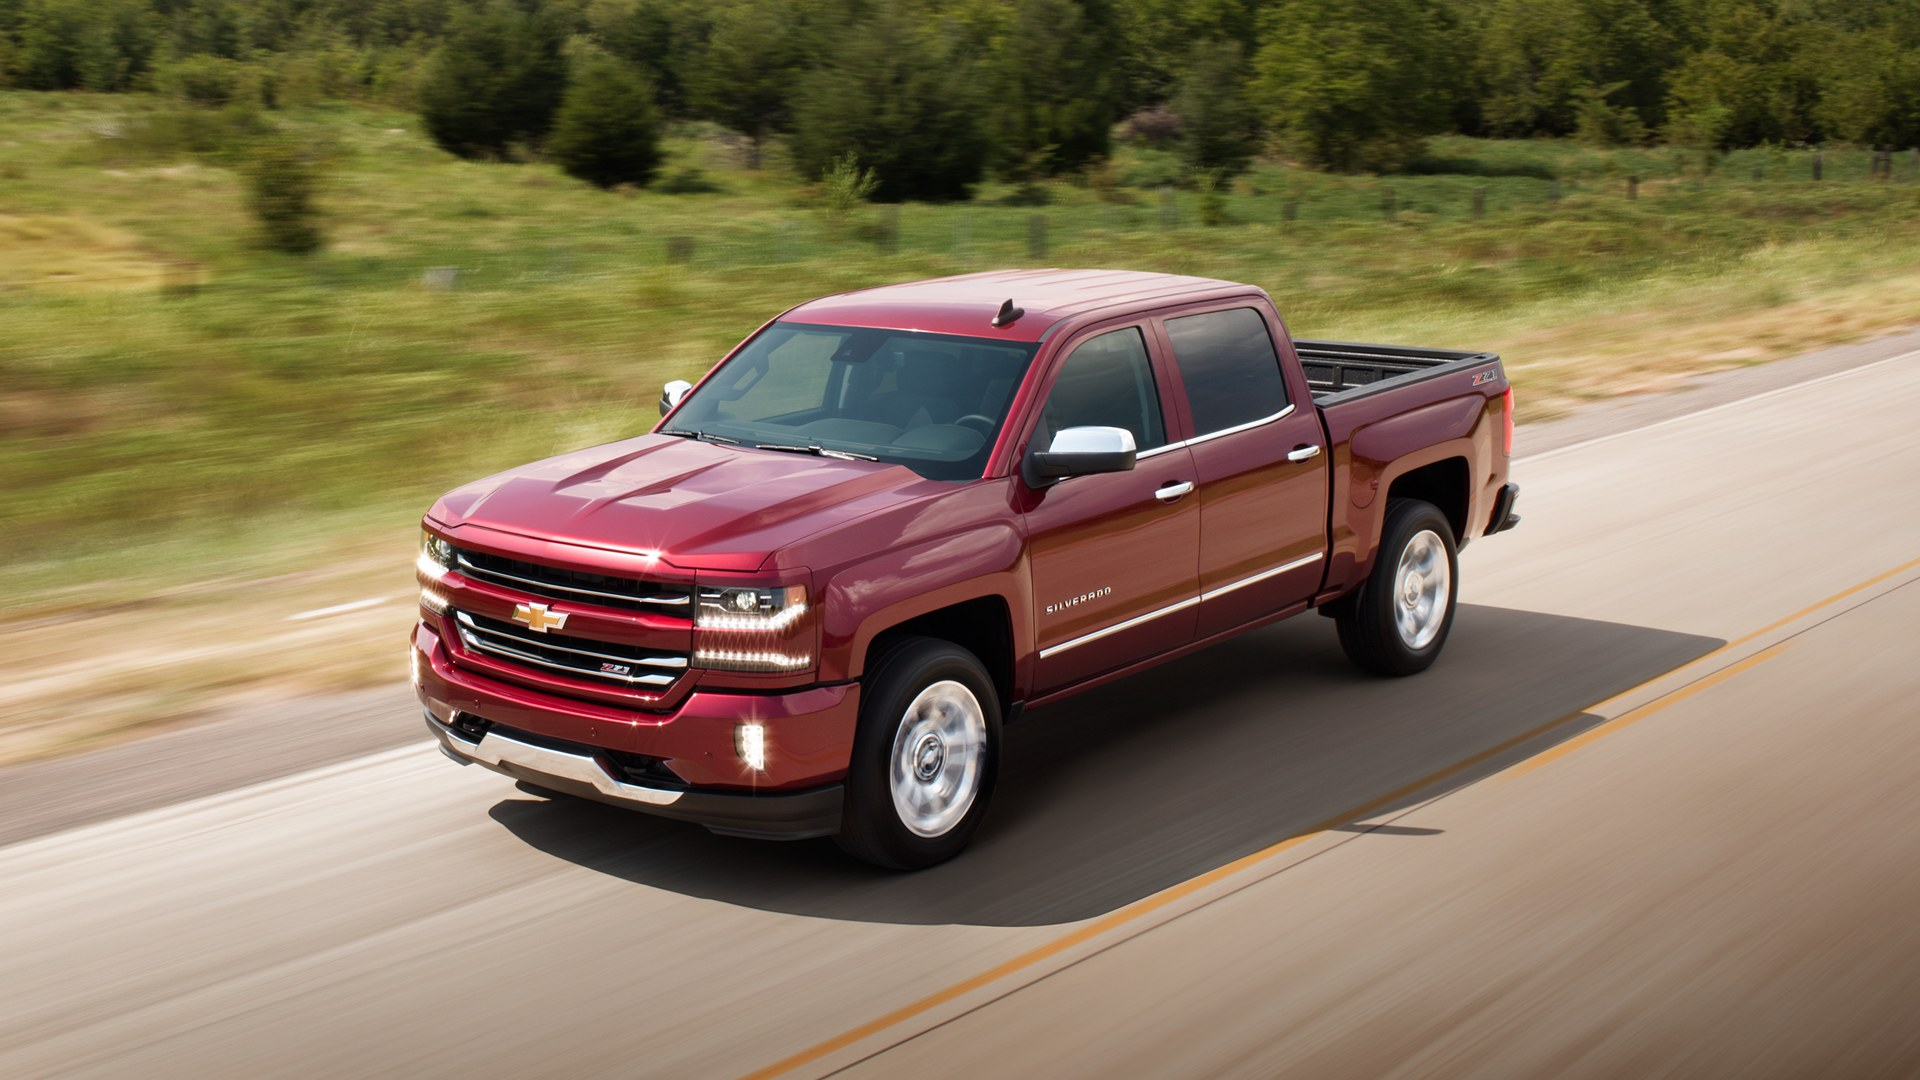 2017 Chevrolet Silverado 1500 For Sale Near Philadelphia Pa Jeff